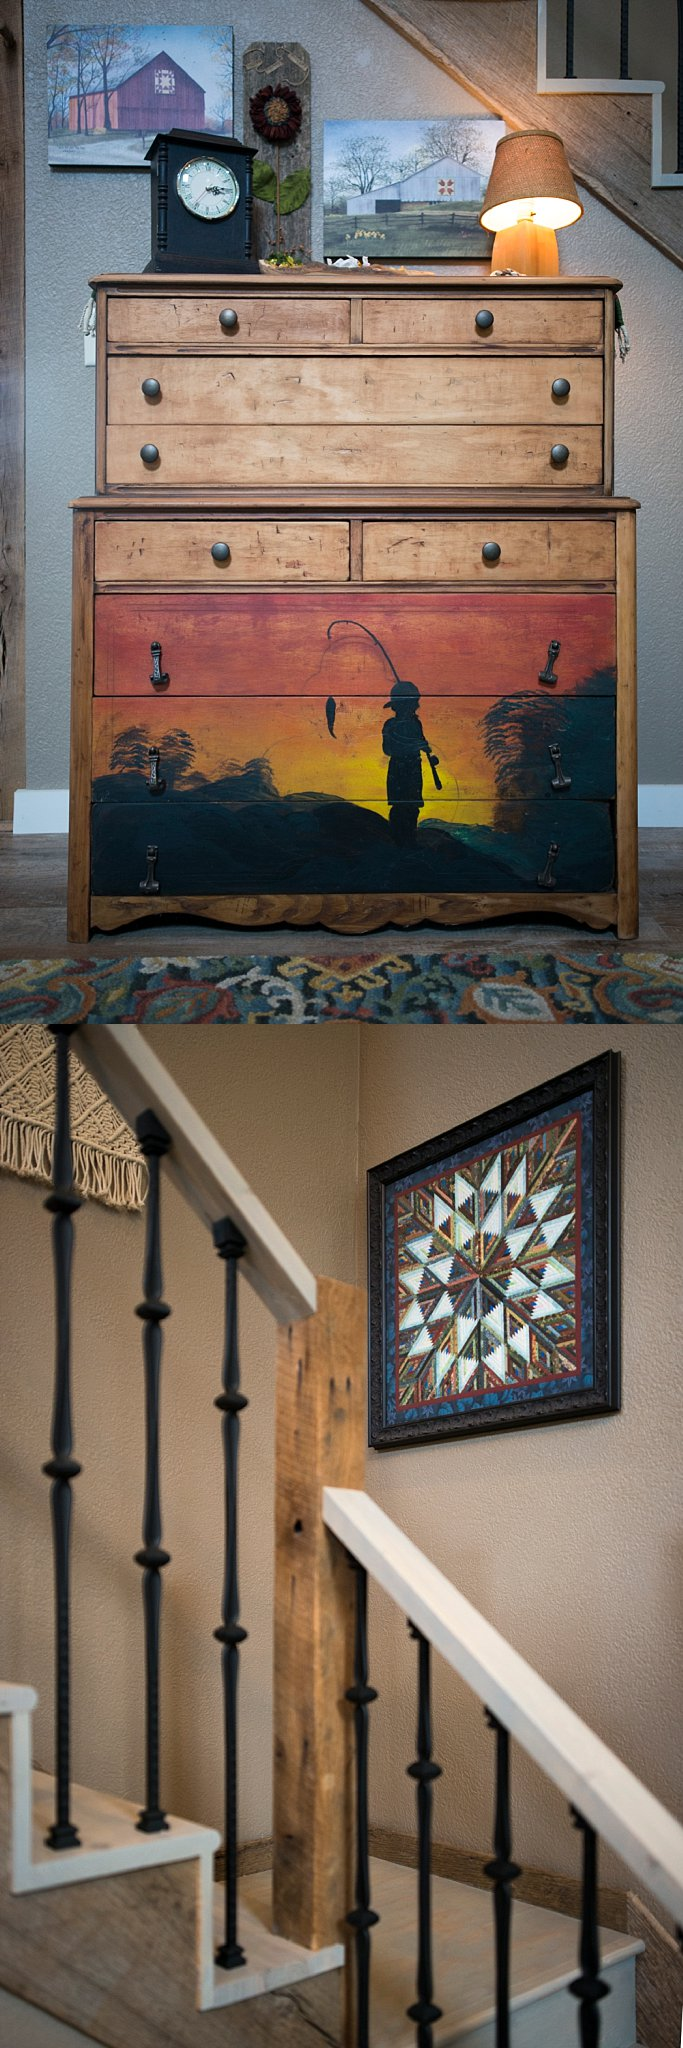 Top:  Virtually everything in this home tells a story.  Bottom:  These stairs lead up to the loft.  The quilt artwork on the wall was made by a friend.